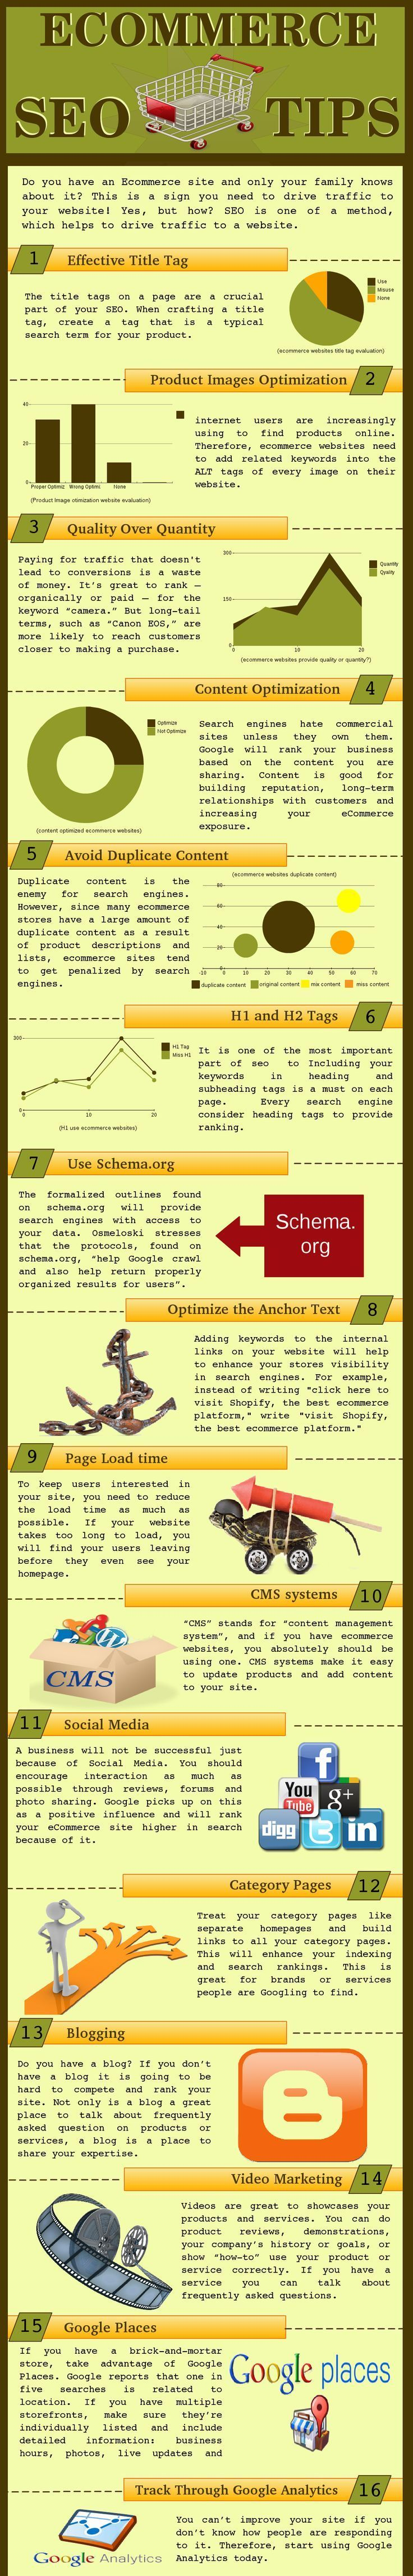 Ecommerce SEO Tips [Infographic] | Search Engine Optimization